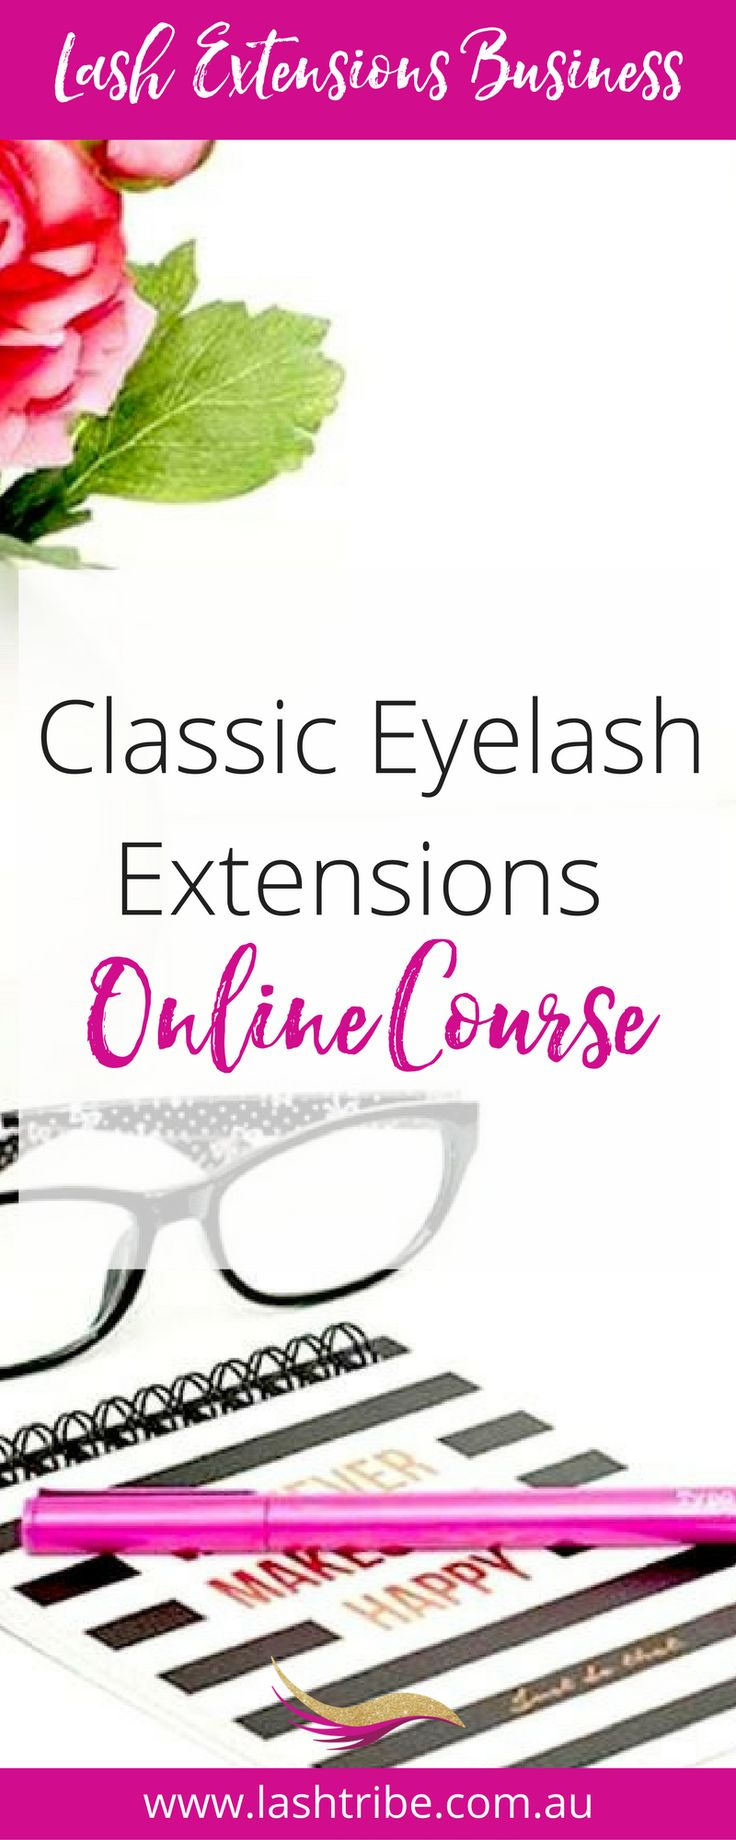 Classic Eyelash Extensions Course is designed for total beginners, anyone who wants learn how to start a business as an Eyelash Extension Artist performing Classic Lashes. The course includes all tricks, tips and techniques you need to know about Classic Eyelash Lashing and what you need to start out working on clients and making money.  Learn more at http://lashtribe.com.au/online-training/classic-lashes-course/ | Lash Extensions Business Tips + Marketing Ideas | Lash Tribe Australia